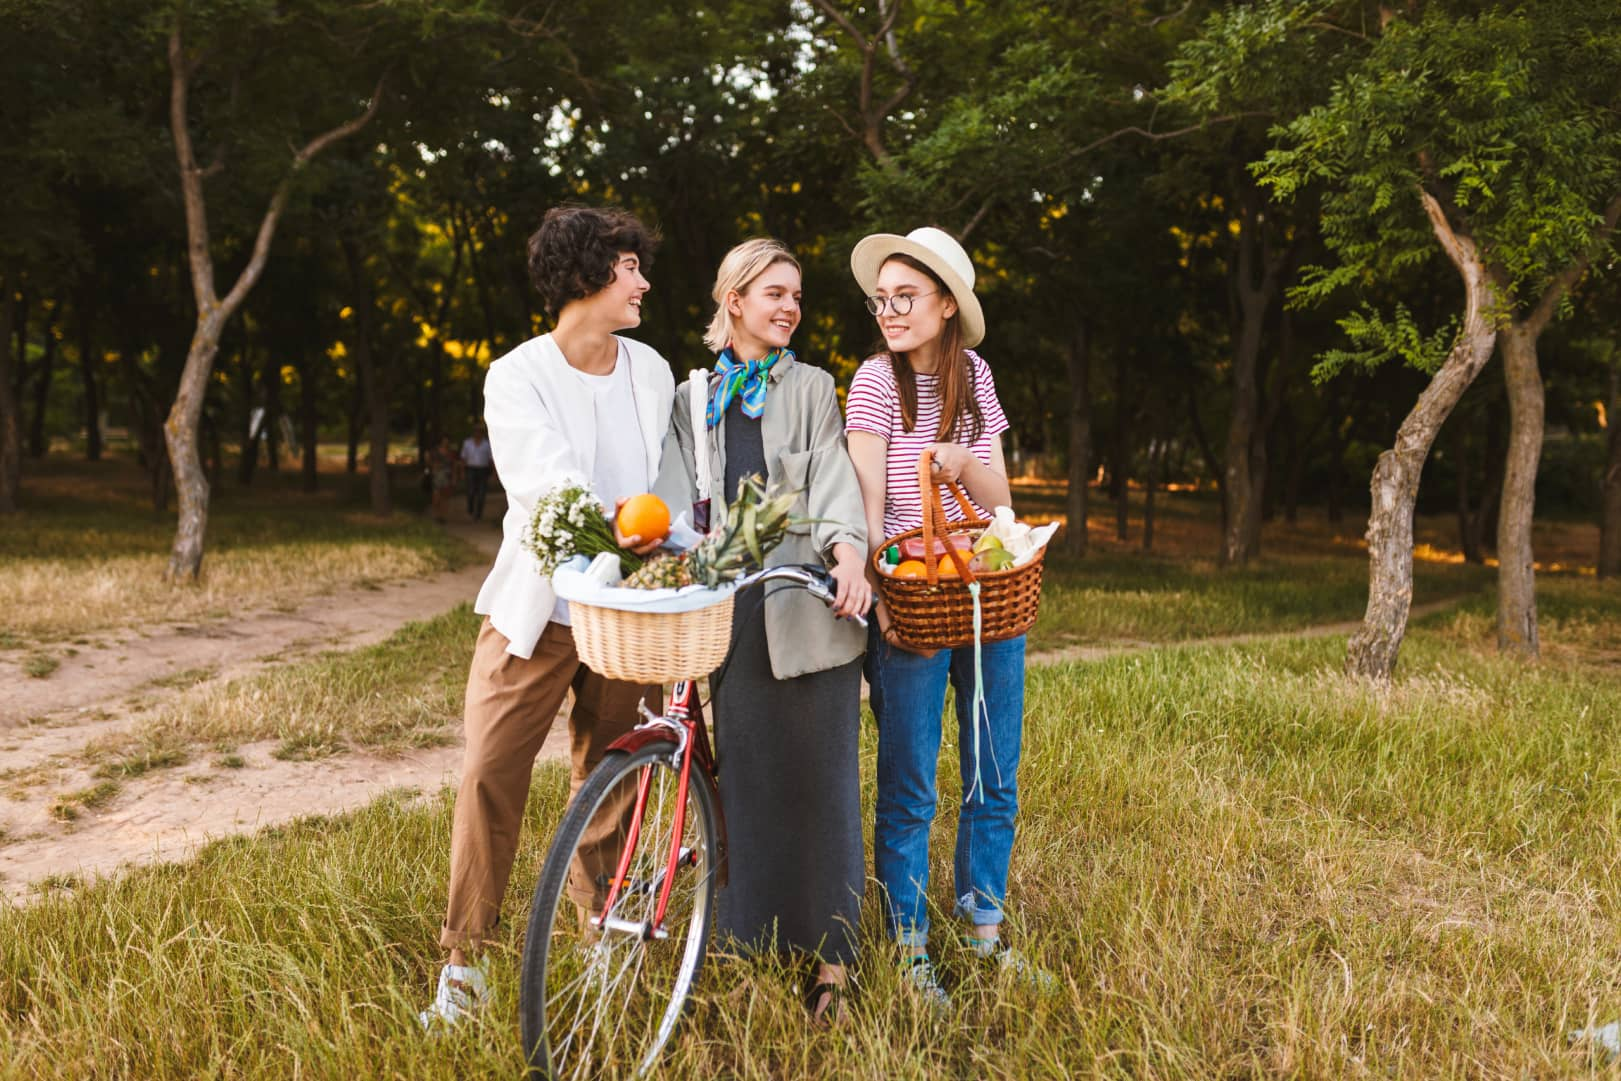 group-of-pretty-girls-with-bicycle-and-basket-full-RXSMFT9